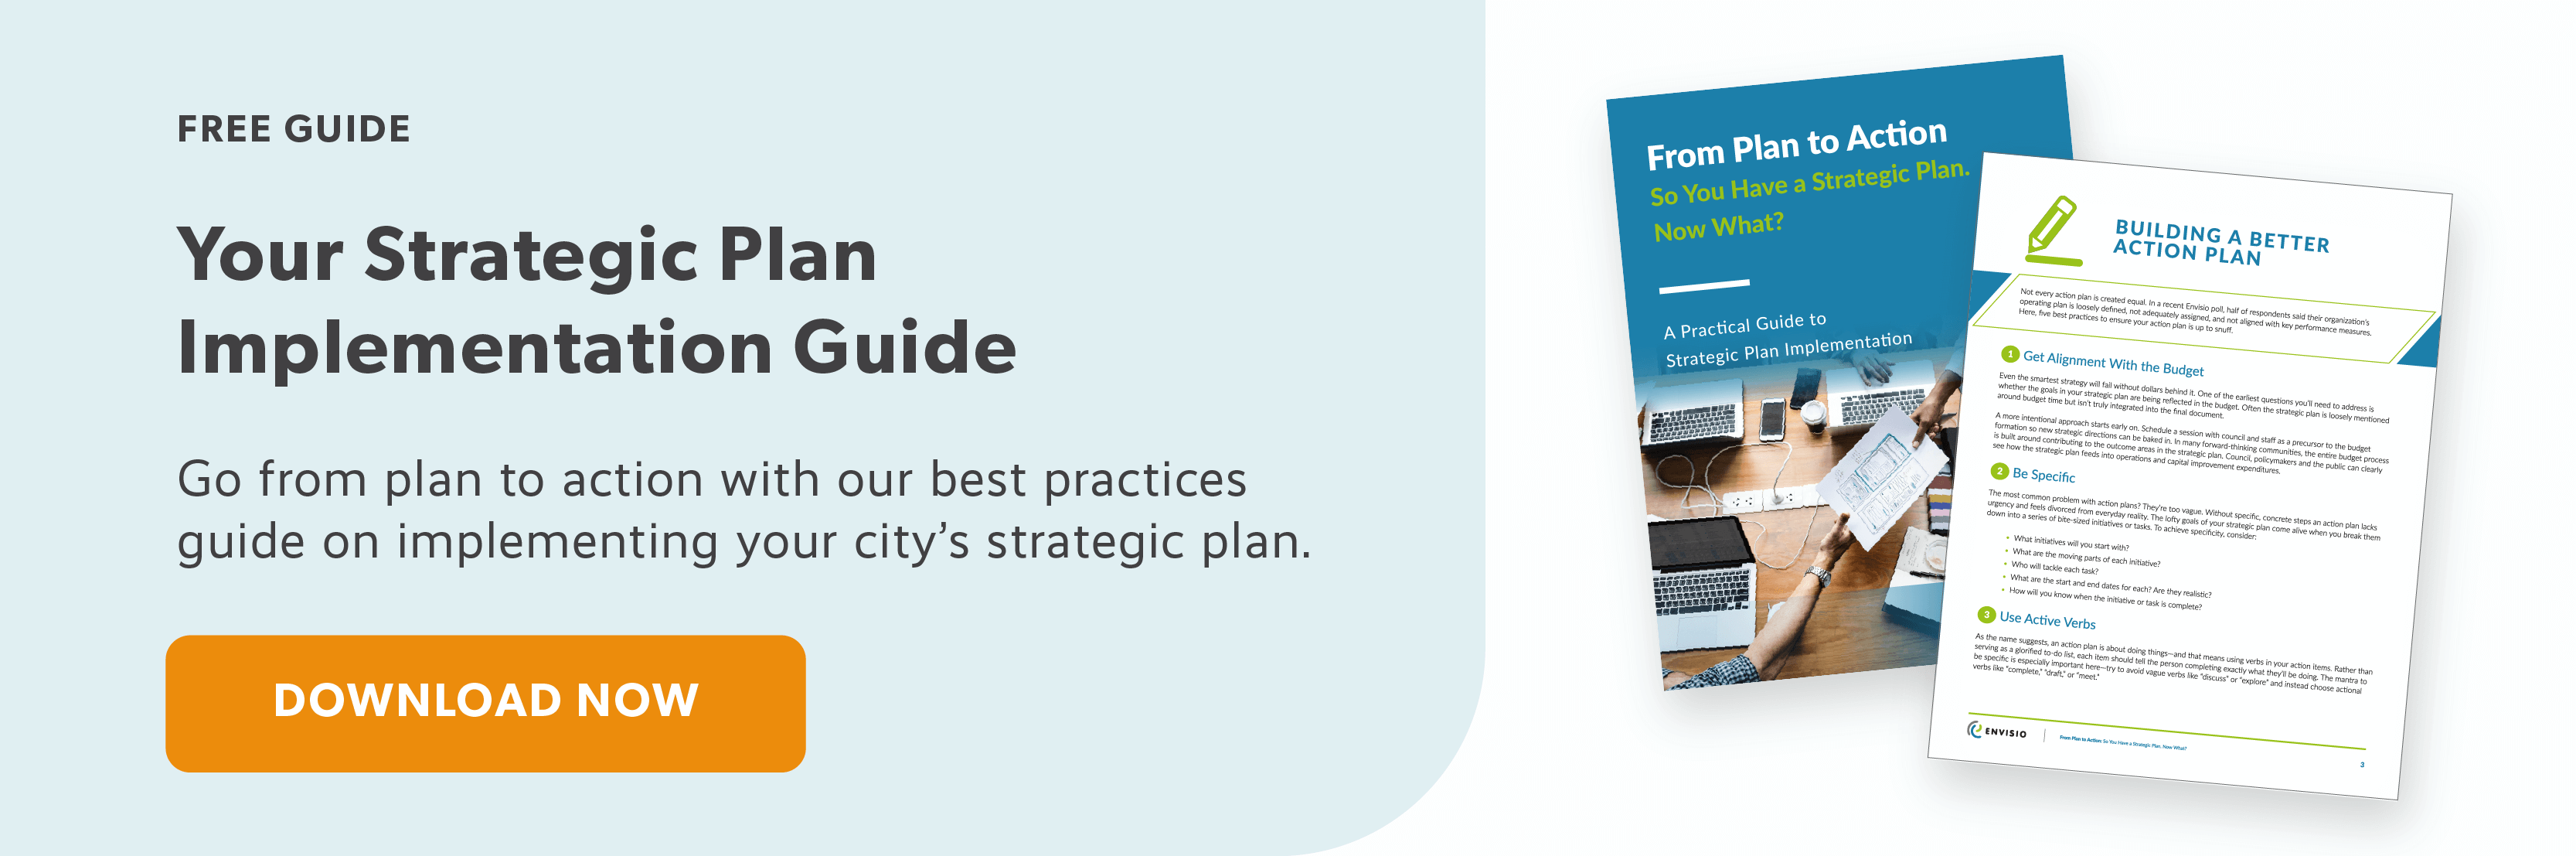 Strategic Plan Implementation Guide